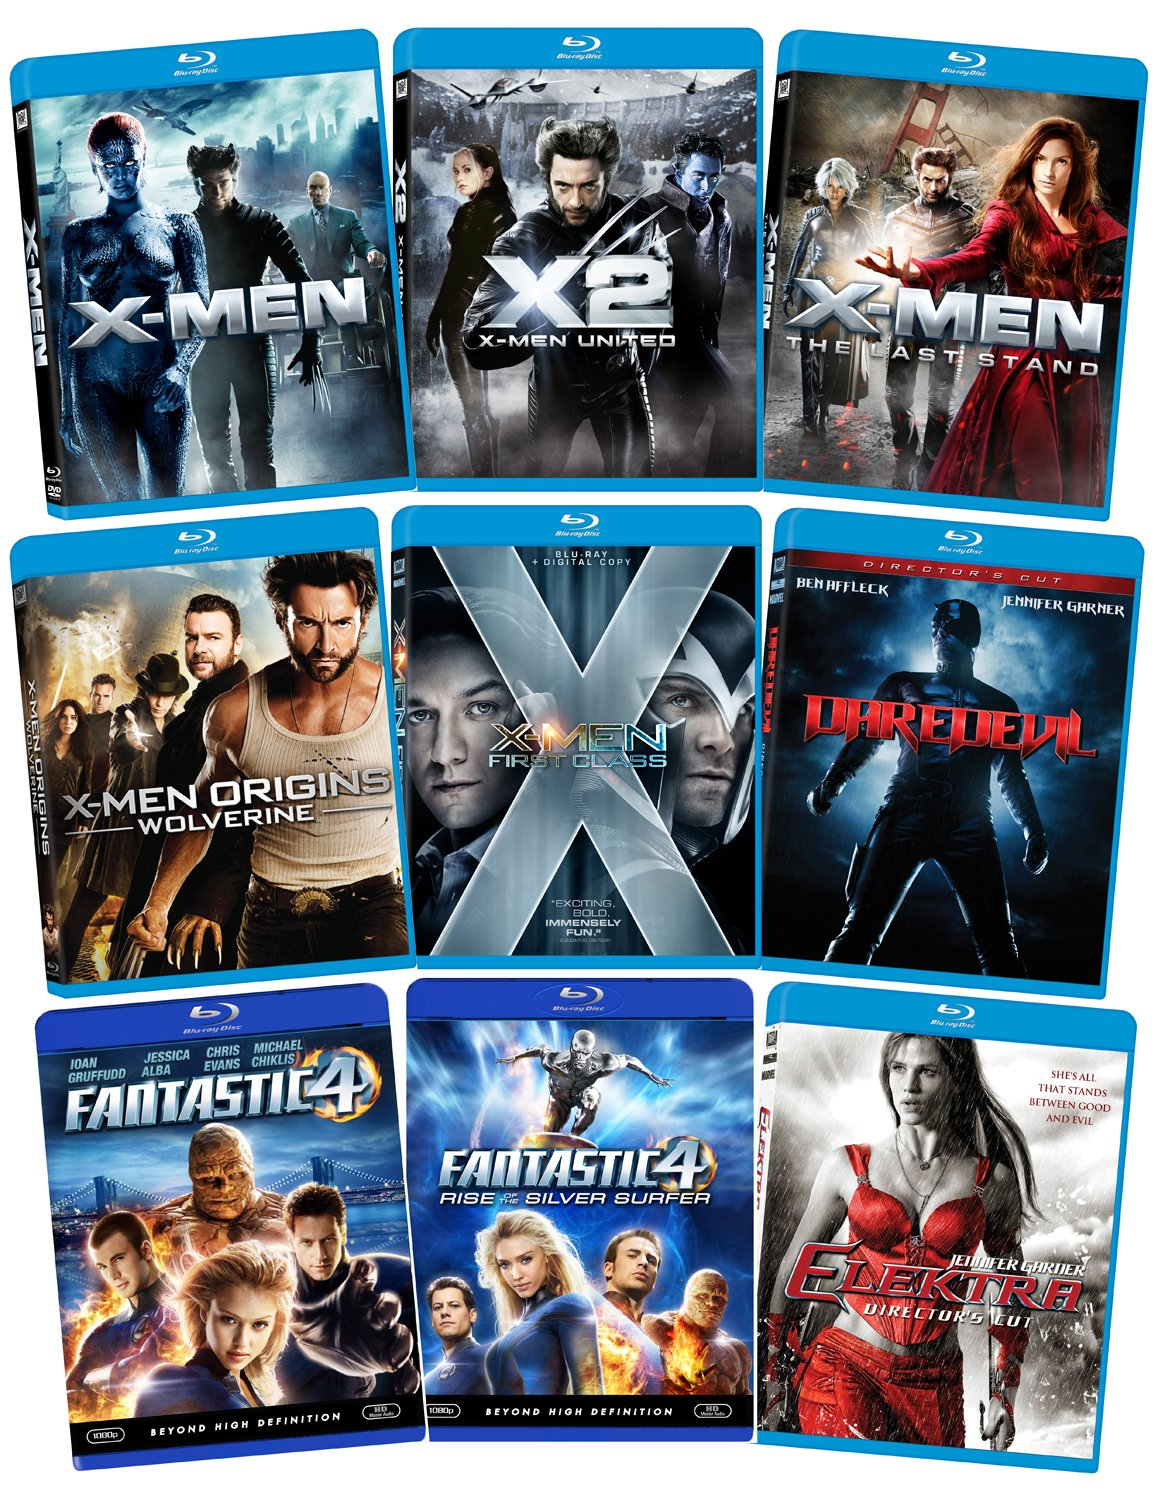 Marvel Blu-ray Bundle (X-Men, X-Men 2, X-Men 3, X-Men First Class, Wolverine, Fantastic Four, Fantastic Four 2, Daredevil, Elektra) $59.99